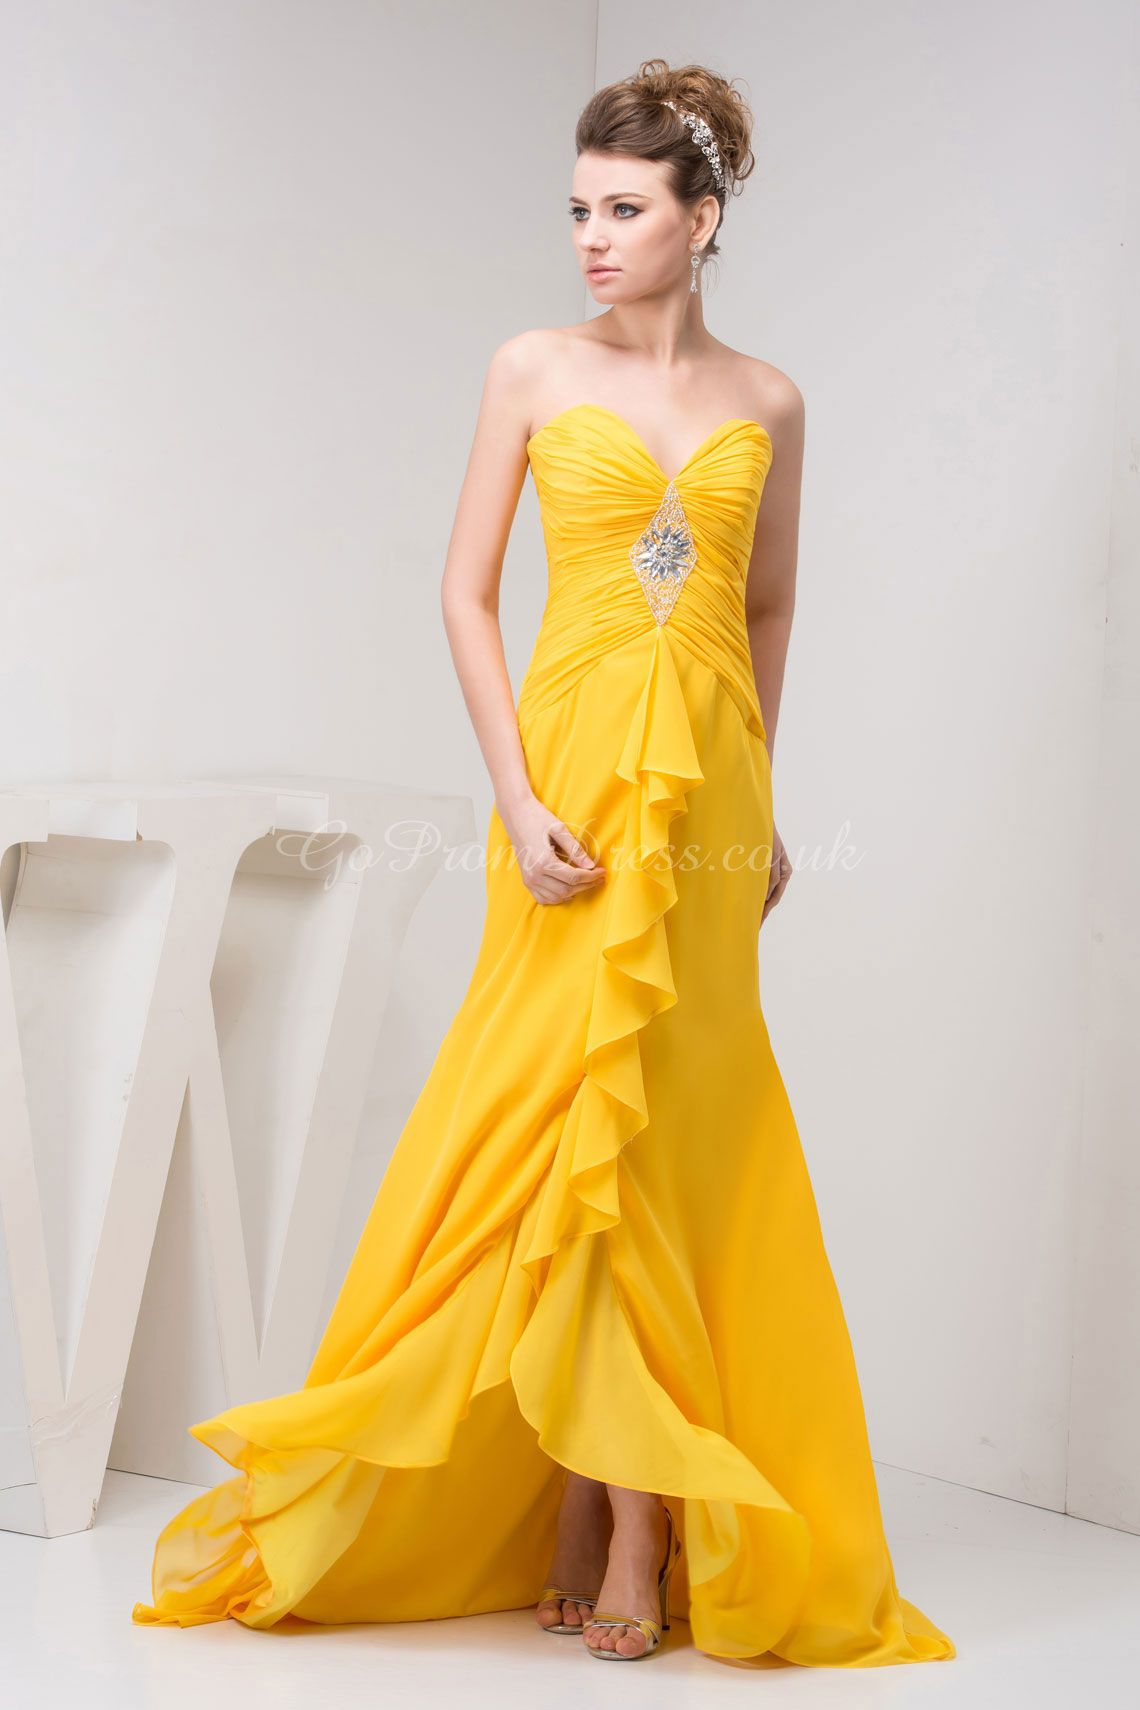 Prom dress funny quotes pinterest prom dresses prom and dress